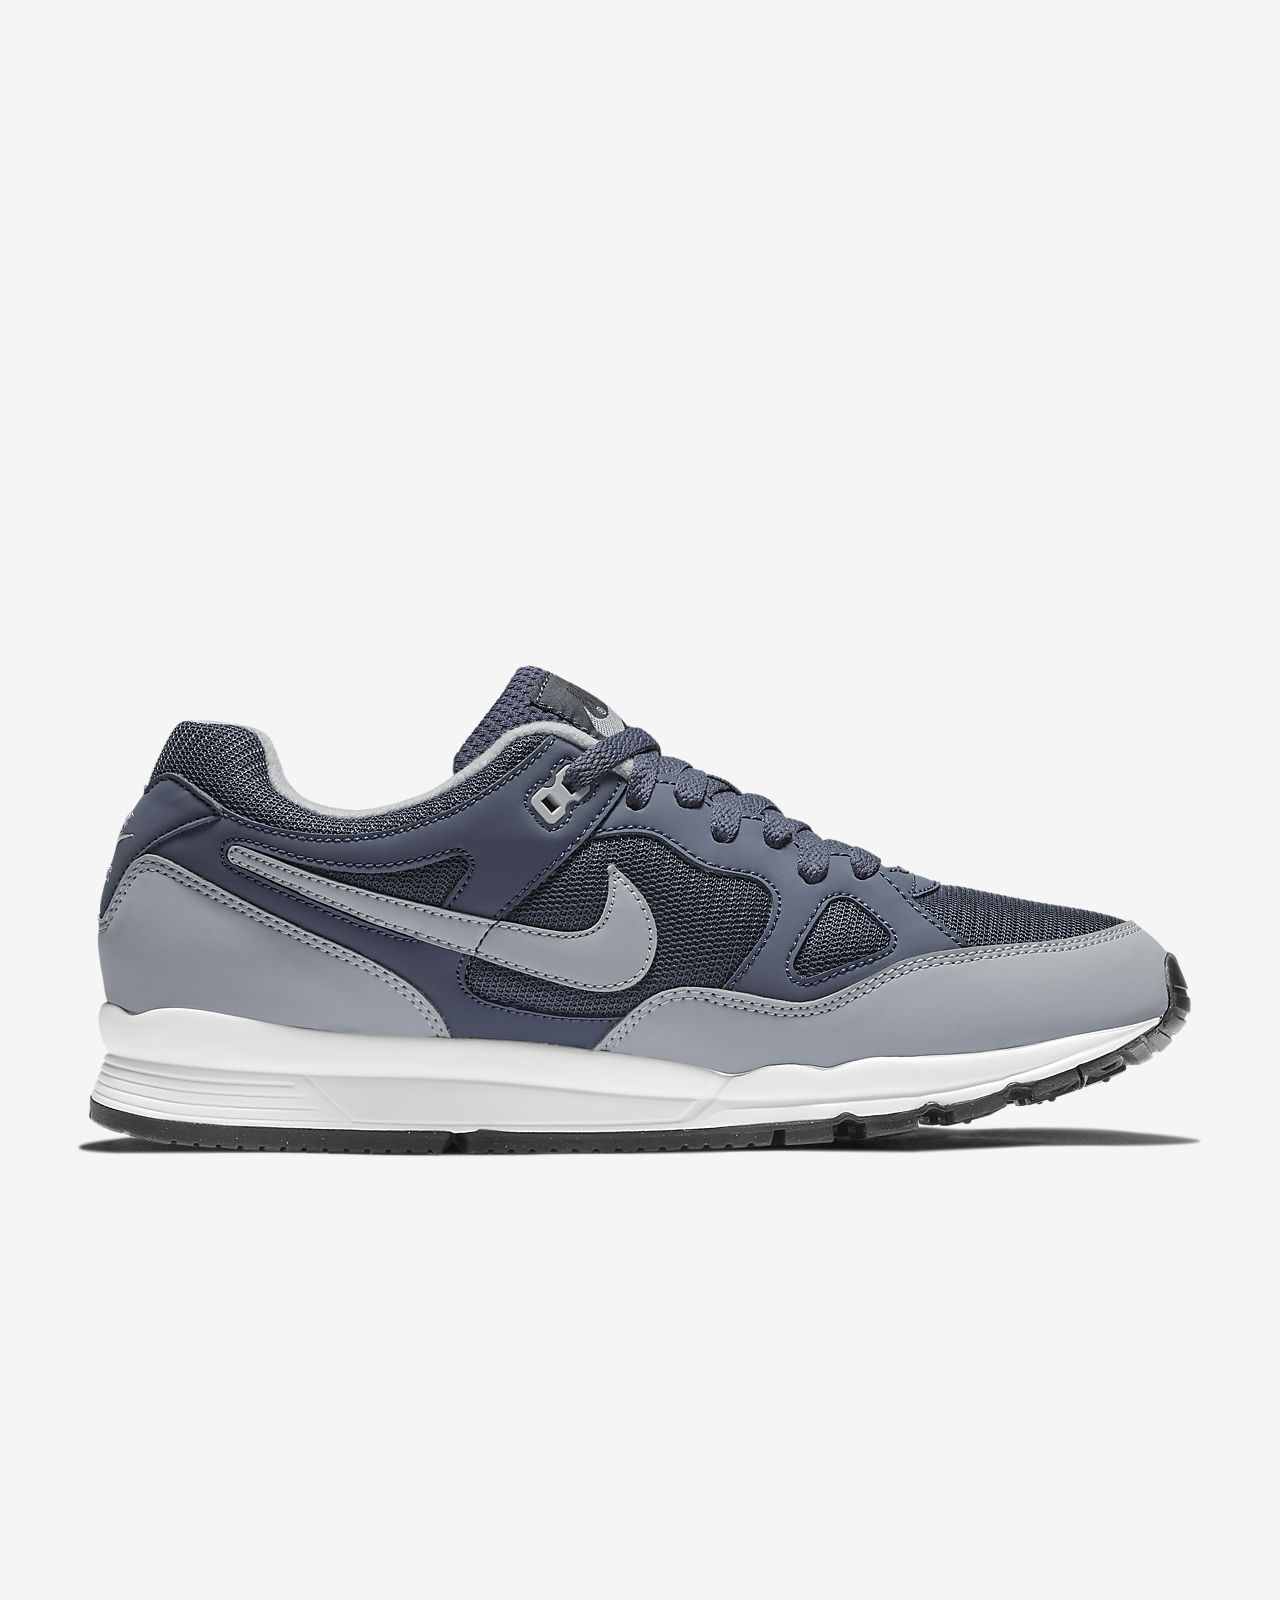 48525912bdb5f Nike Air Span II Men s Shoe. Nike.com